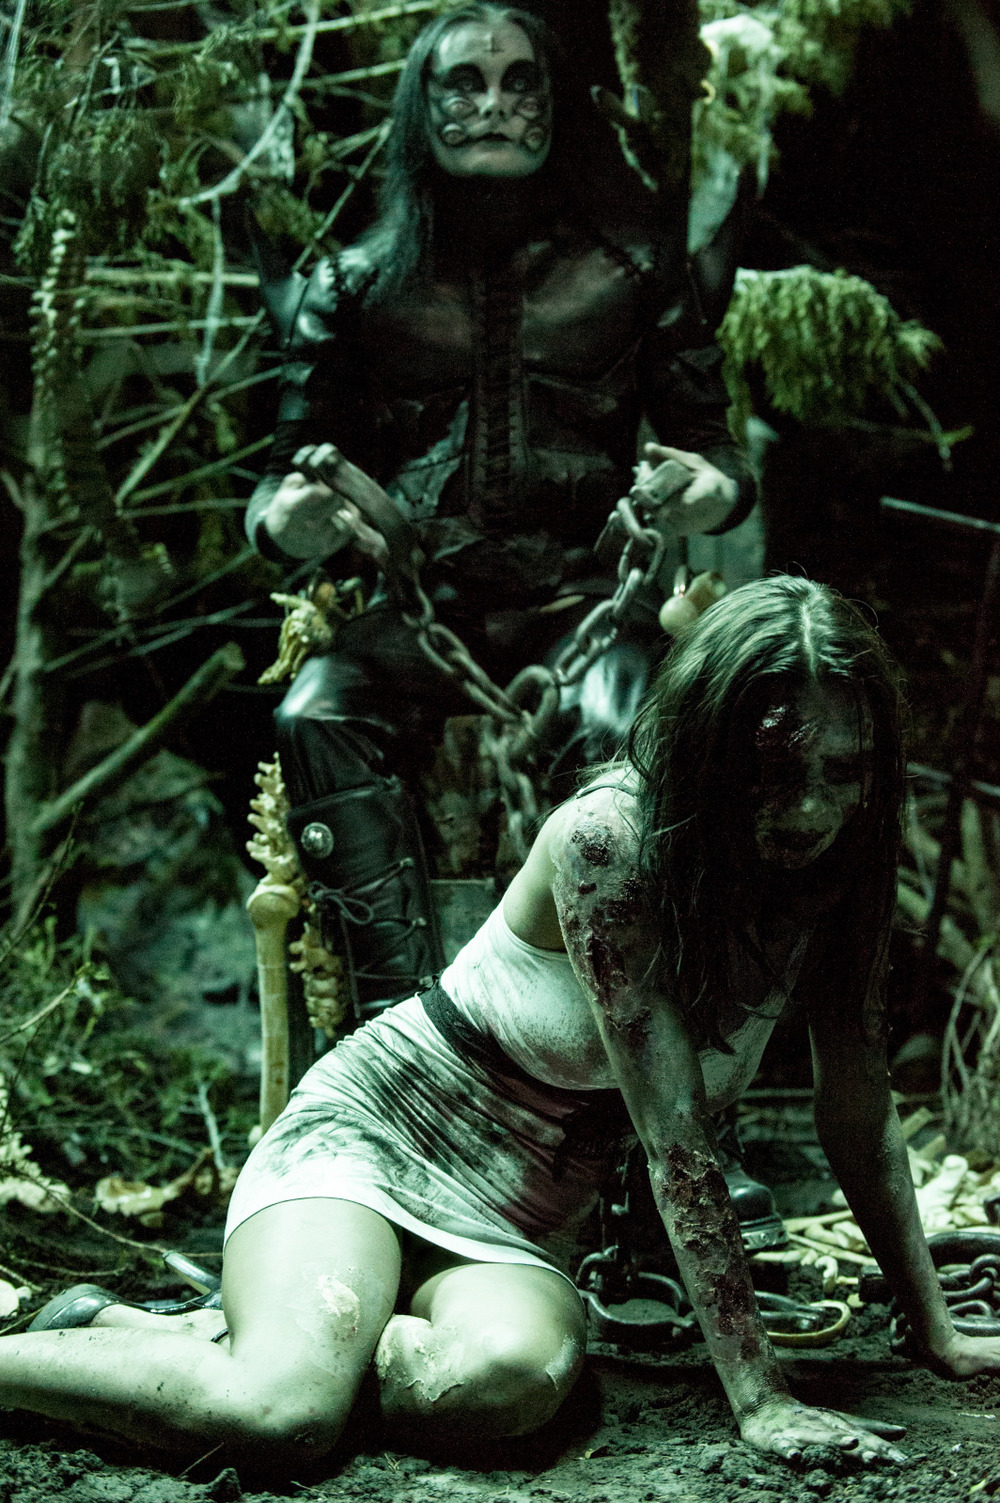 Music Video: Cradle of Filth 'For Your Vulgar Delectation' (2013)